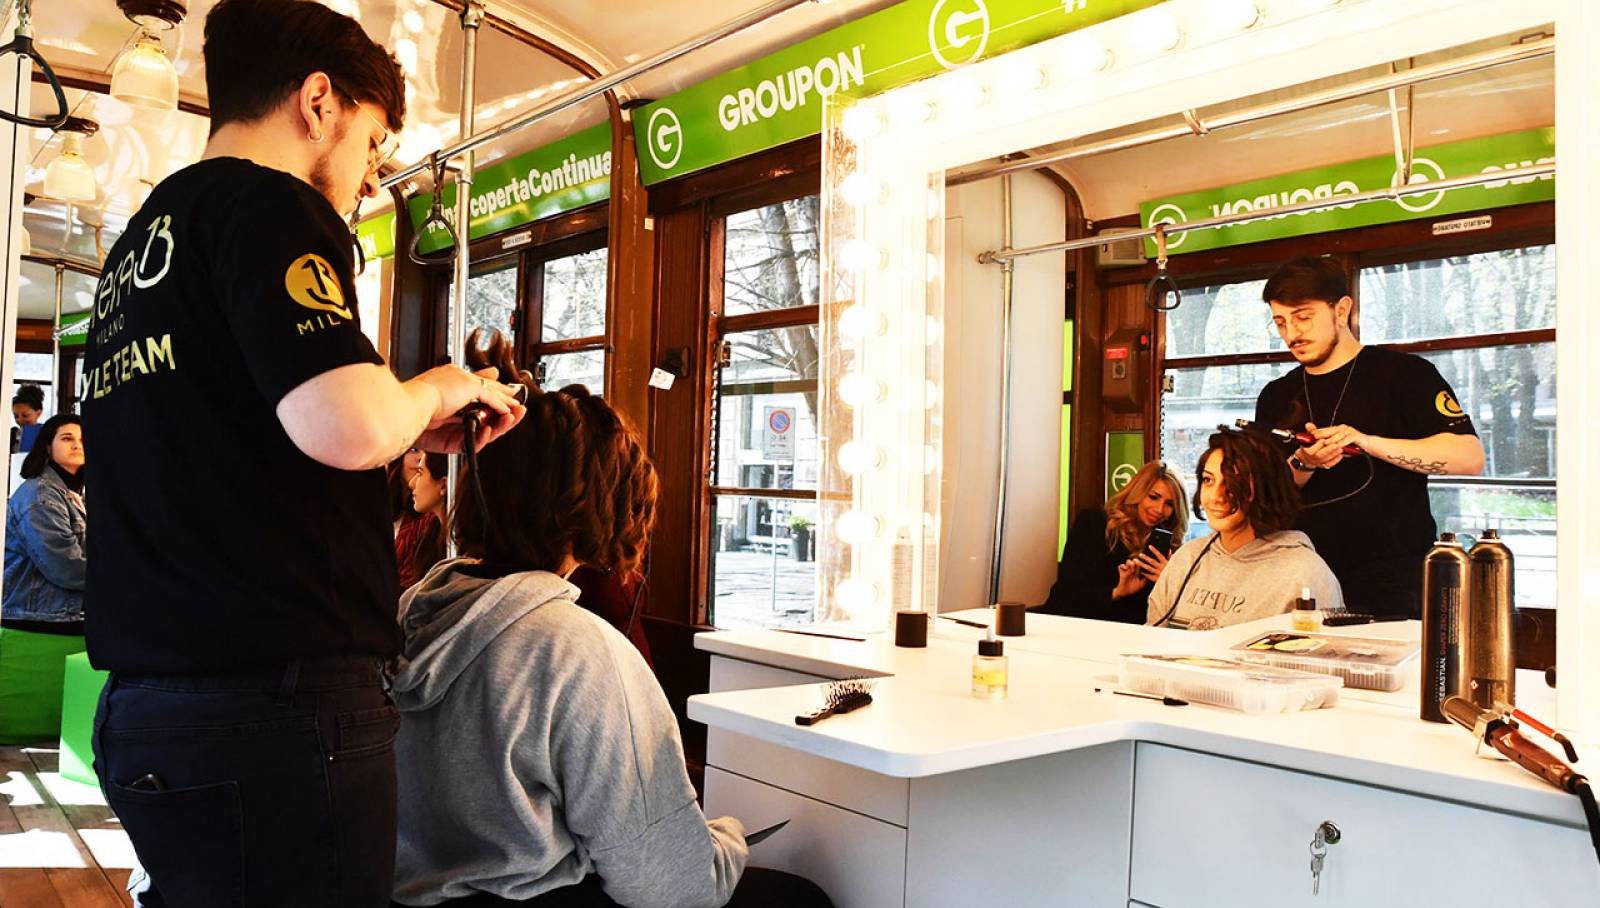 IGPDecaux OOH a Milano tram speciale per Groupon